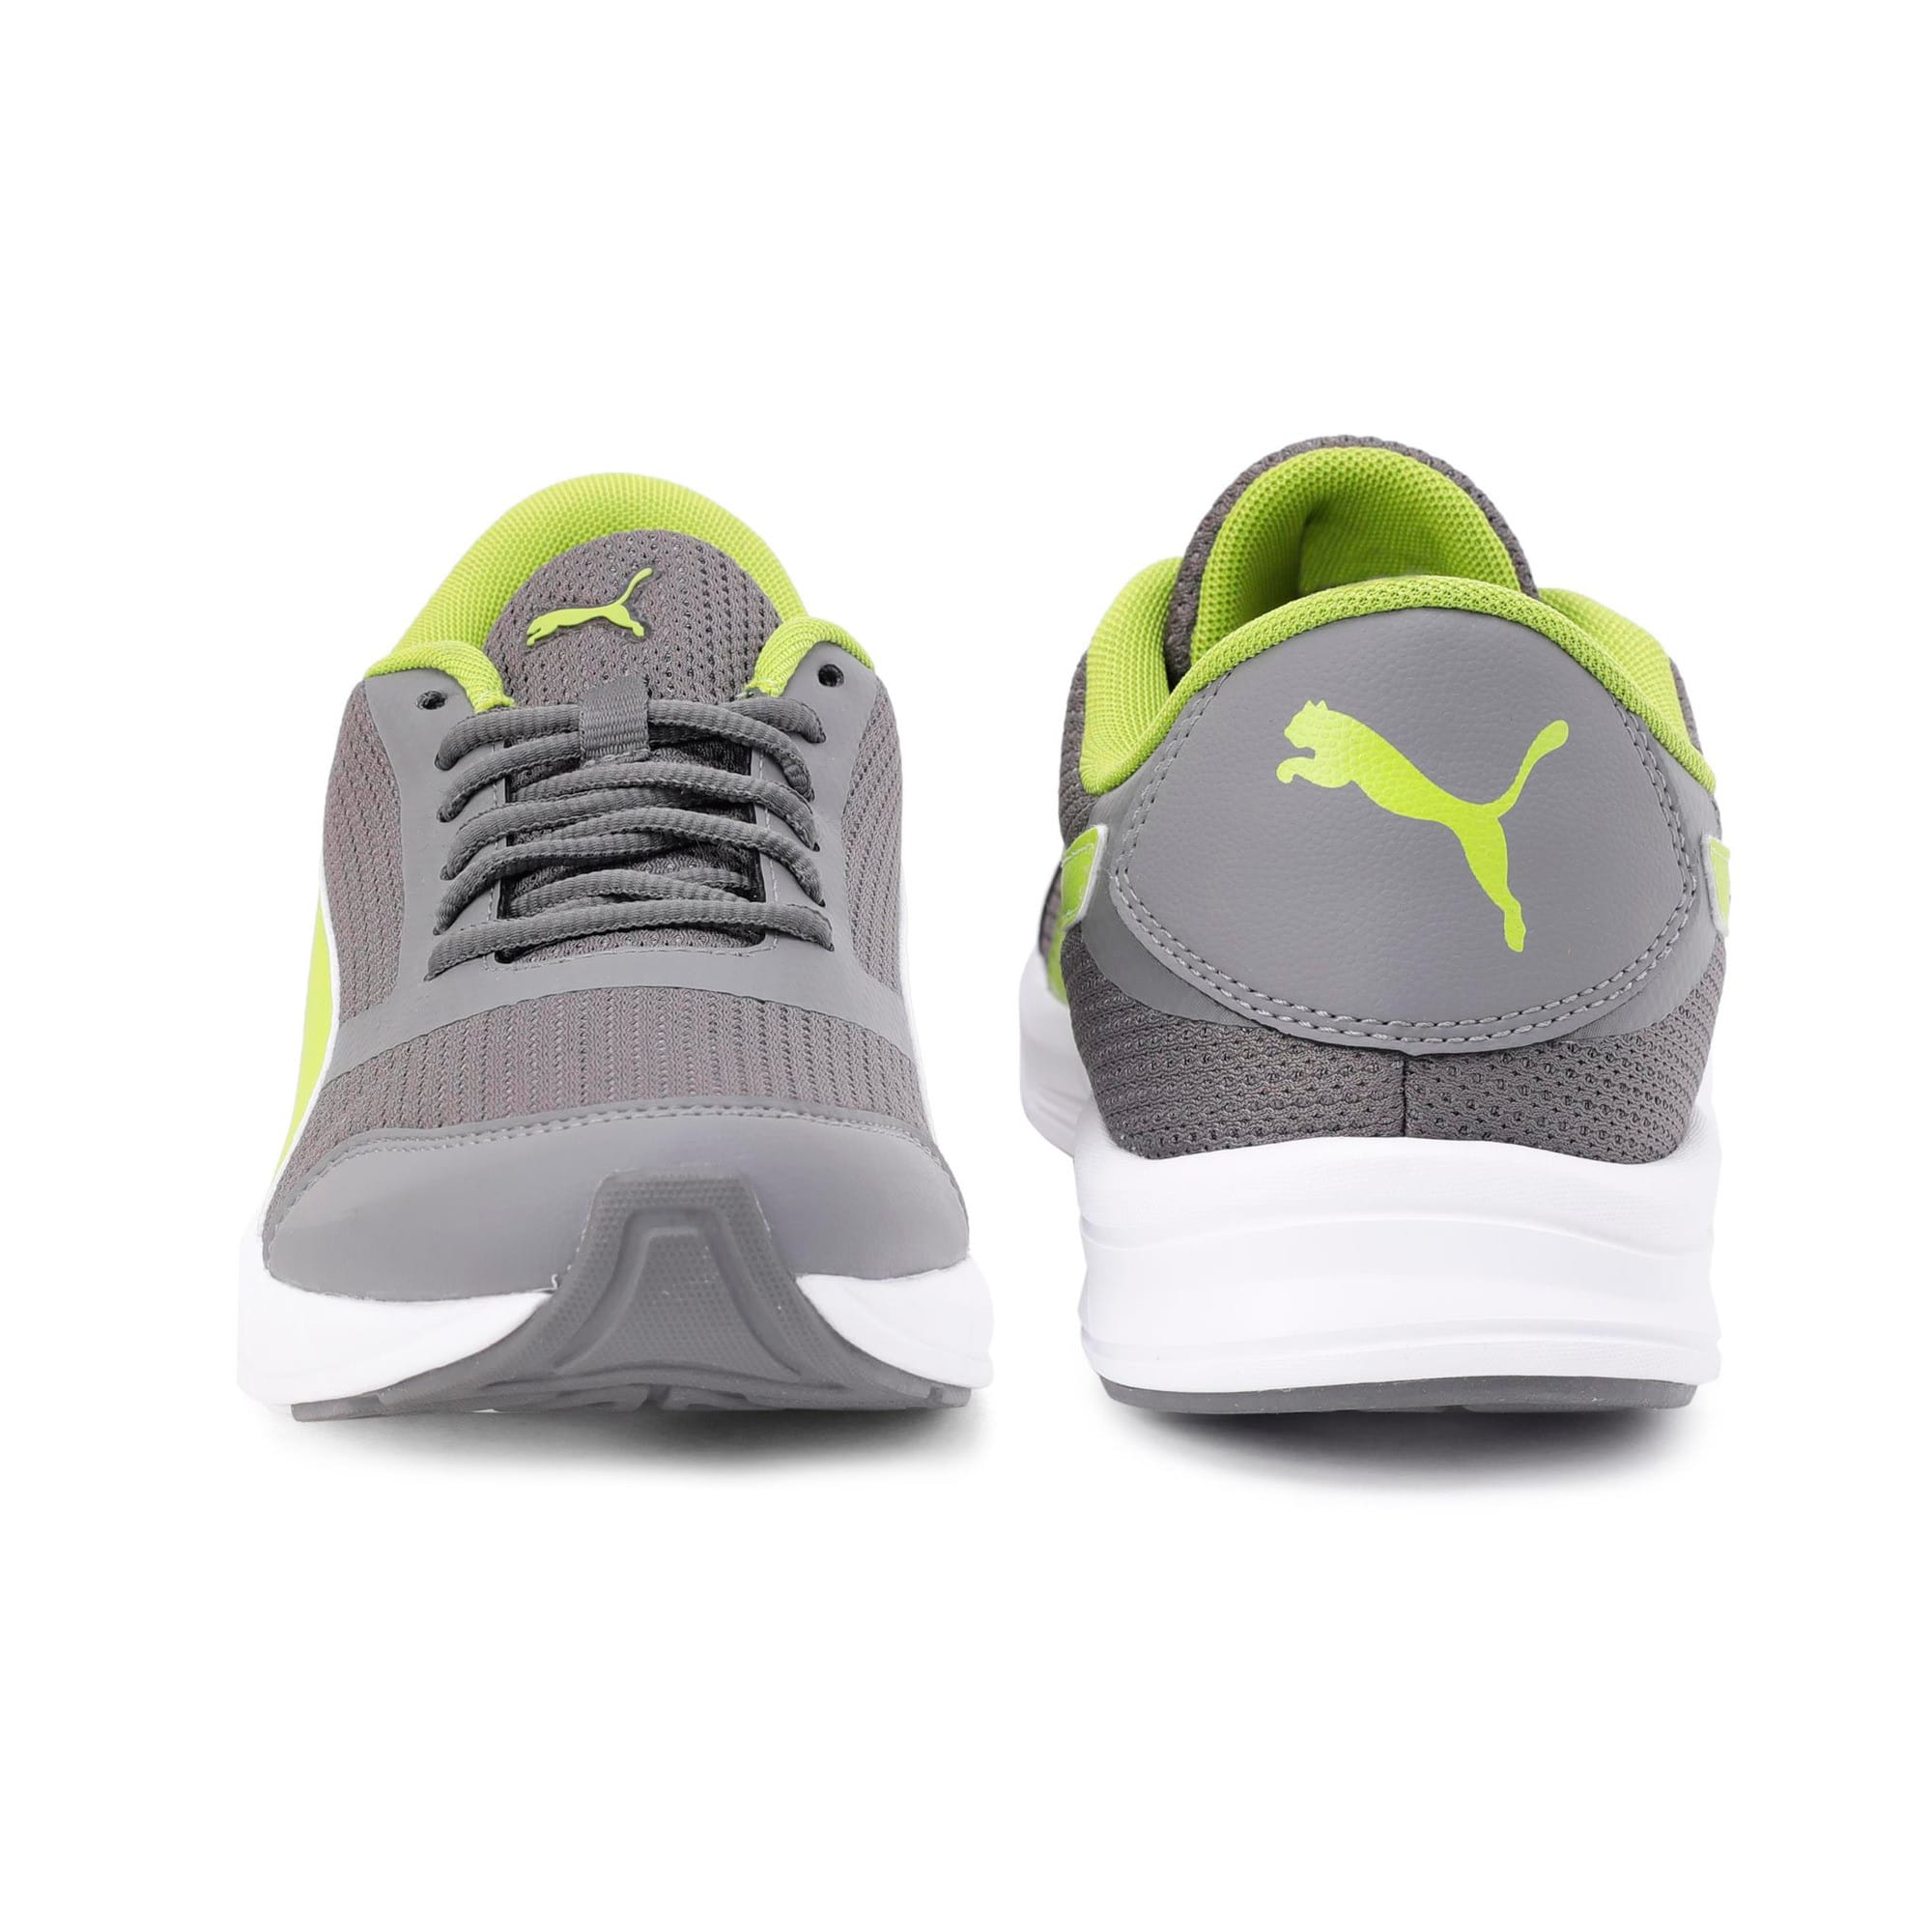 Thumbnail 5 of Solar V IDP Puma Black-Puma White, Charcoal Gray-White-Lime, medium-IND